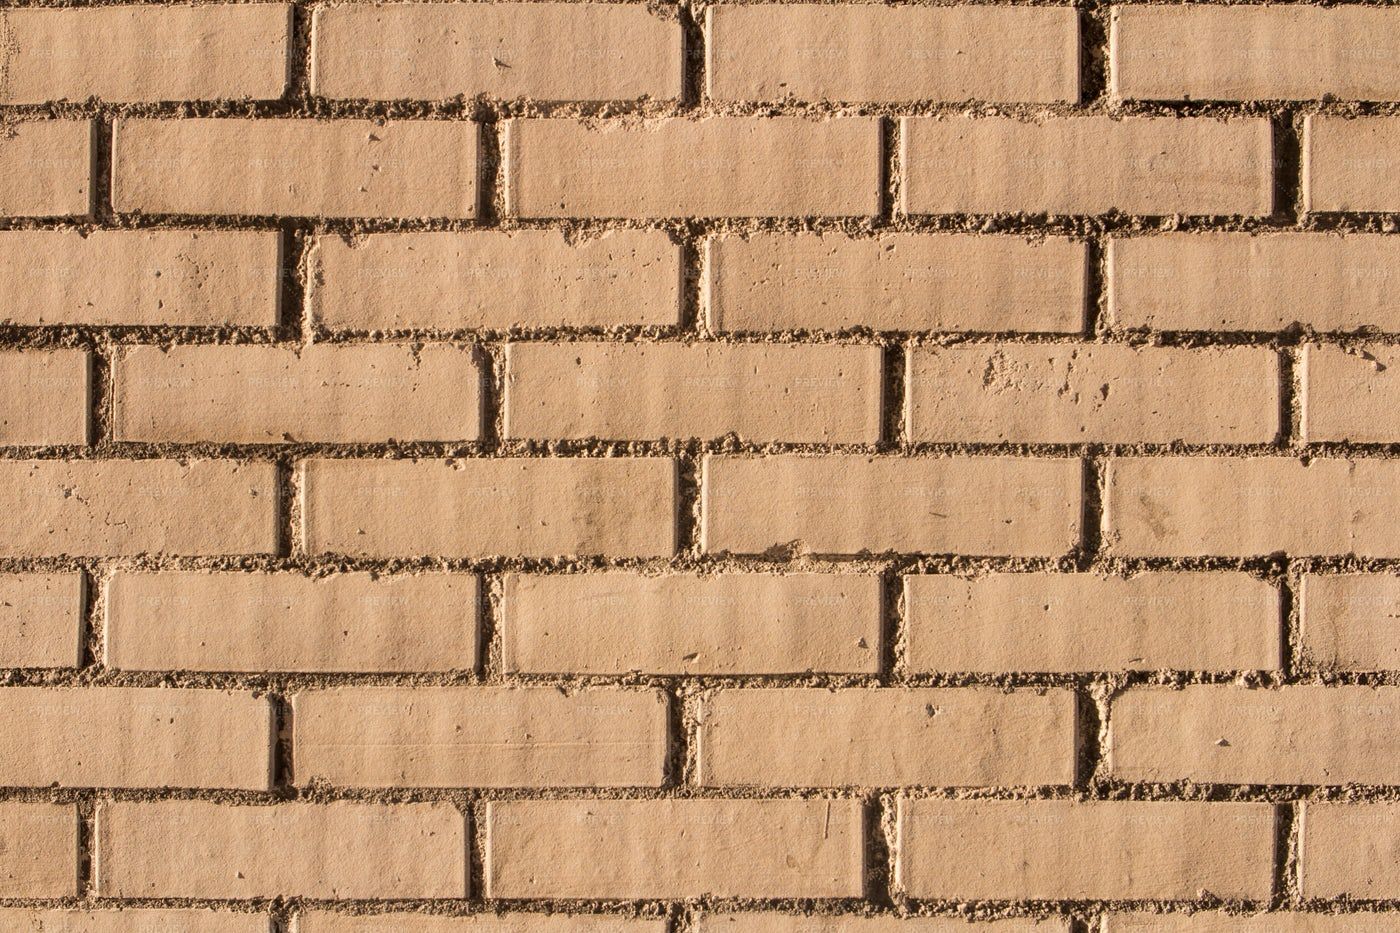 Brown Brick Wall With Gray Cement: Stock Photos